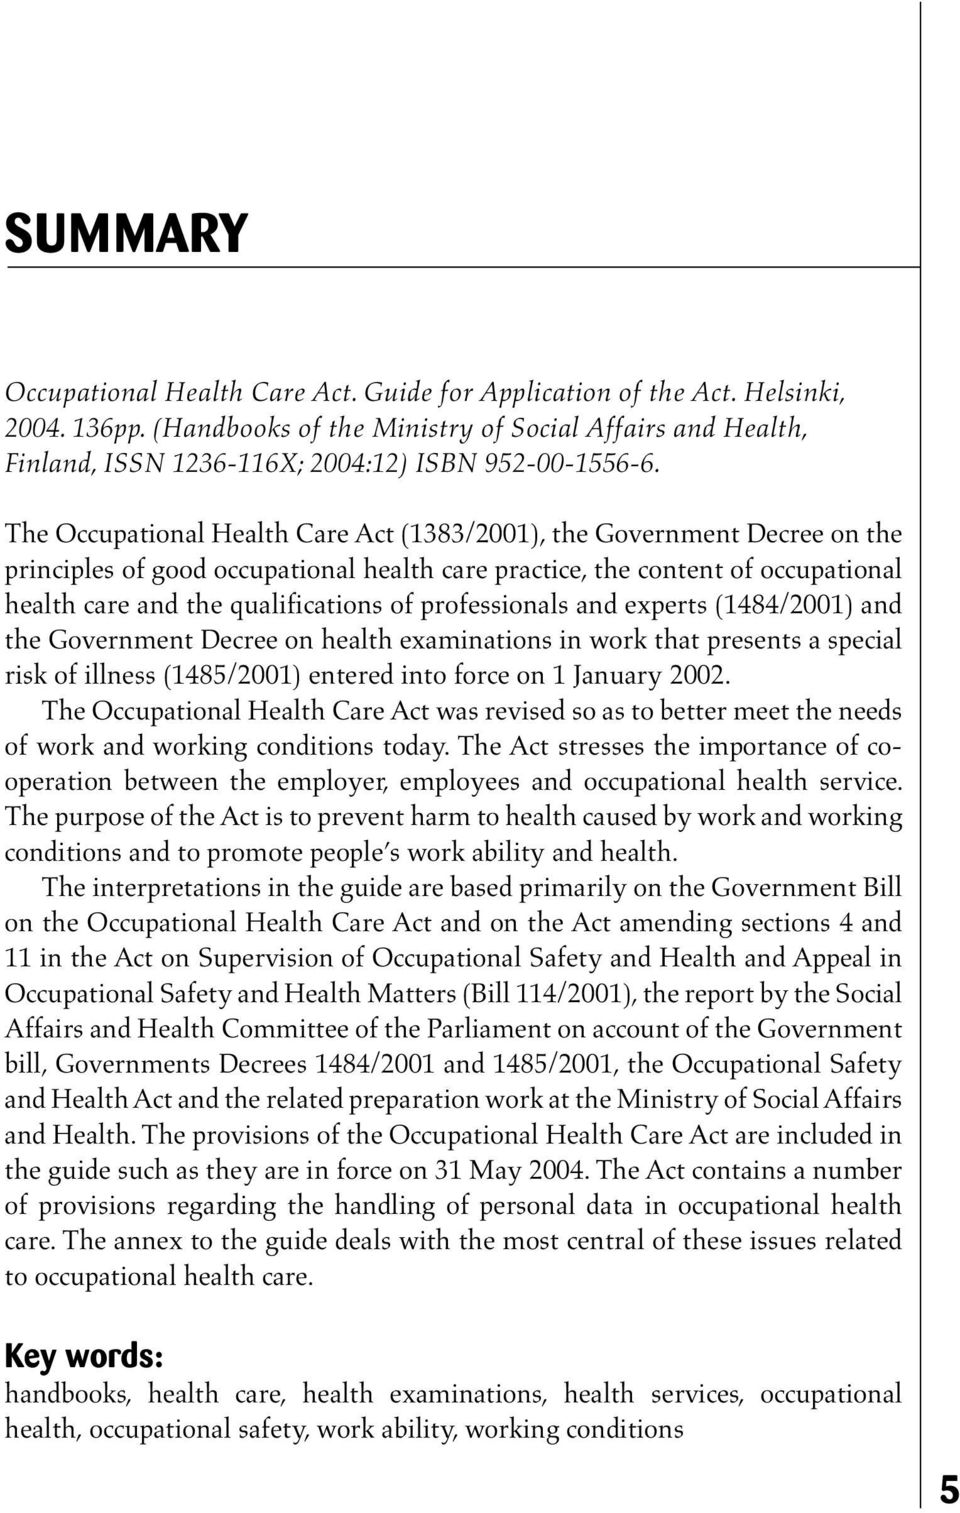 The Occupational Health Care Act (1383/2001), the Government Decree on the principles of good occupational health care practice, the content of occupational health care and the qualifications of